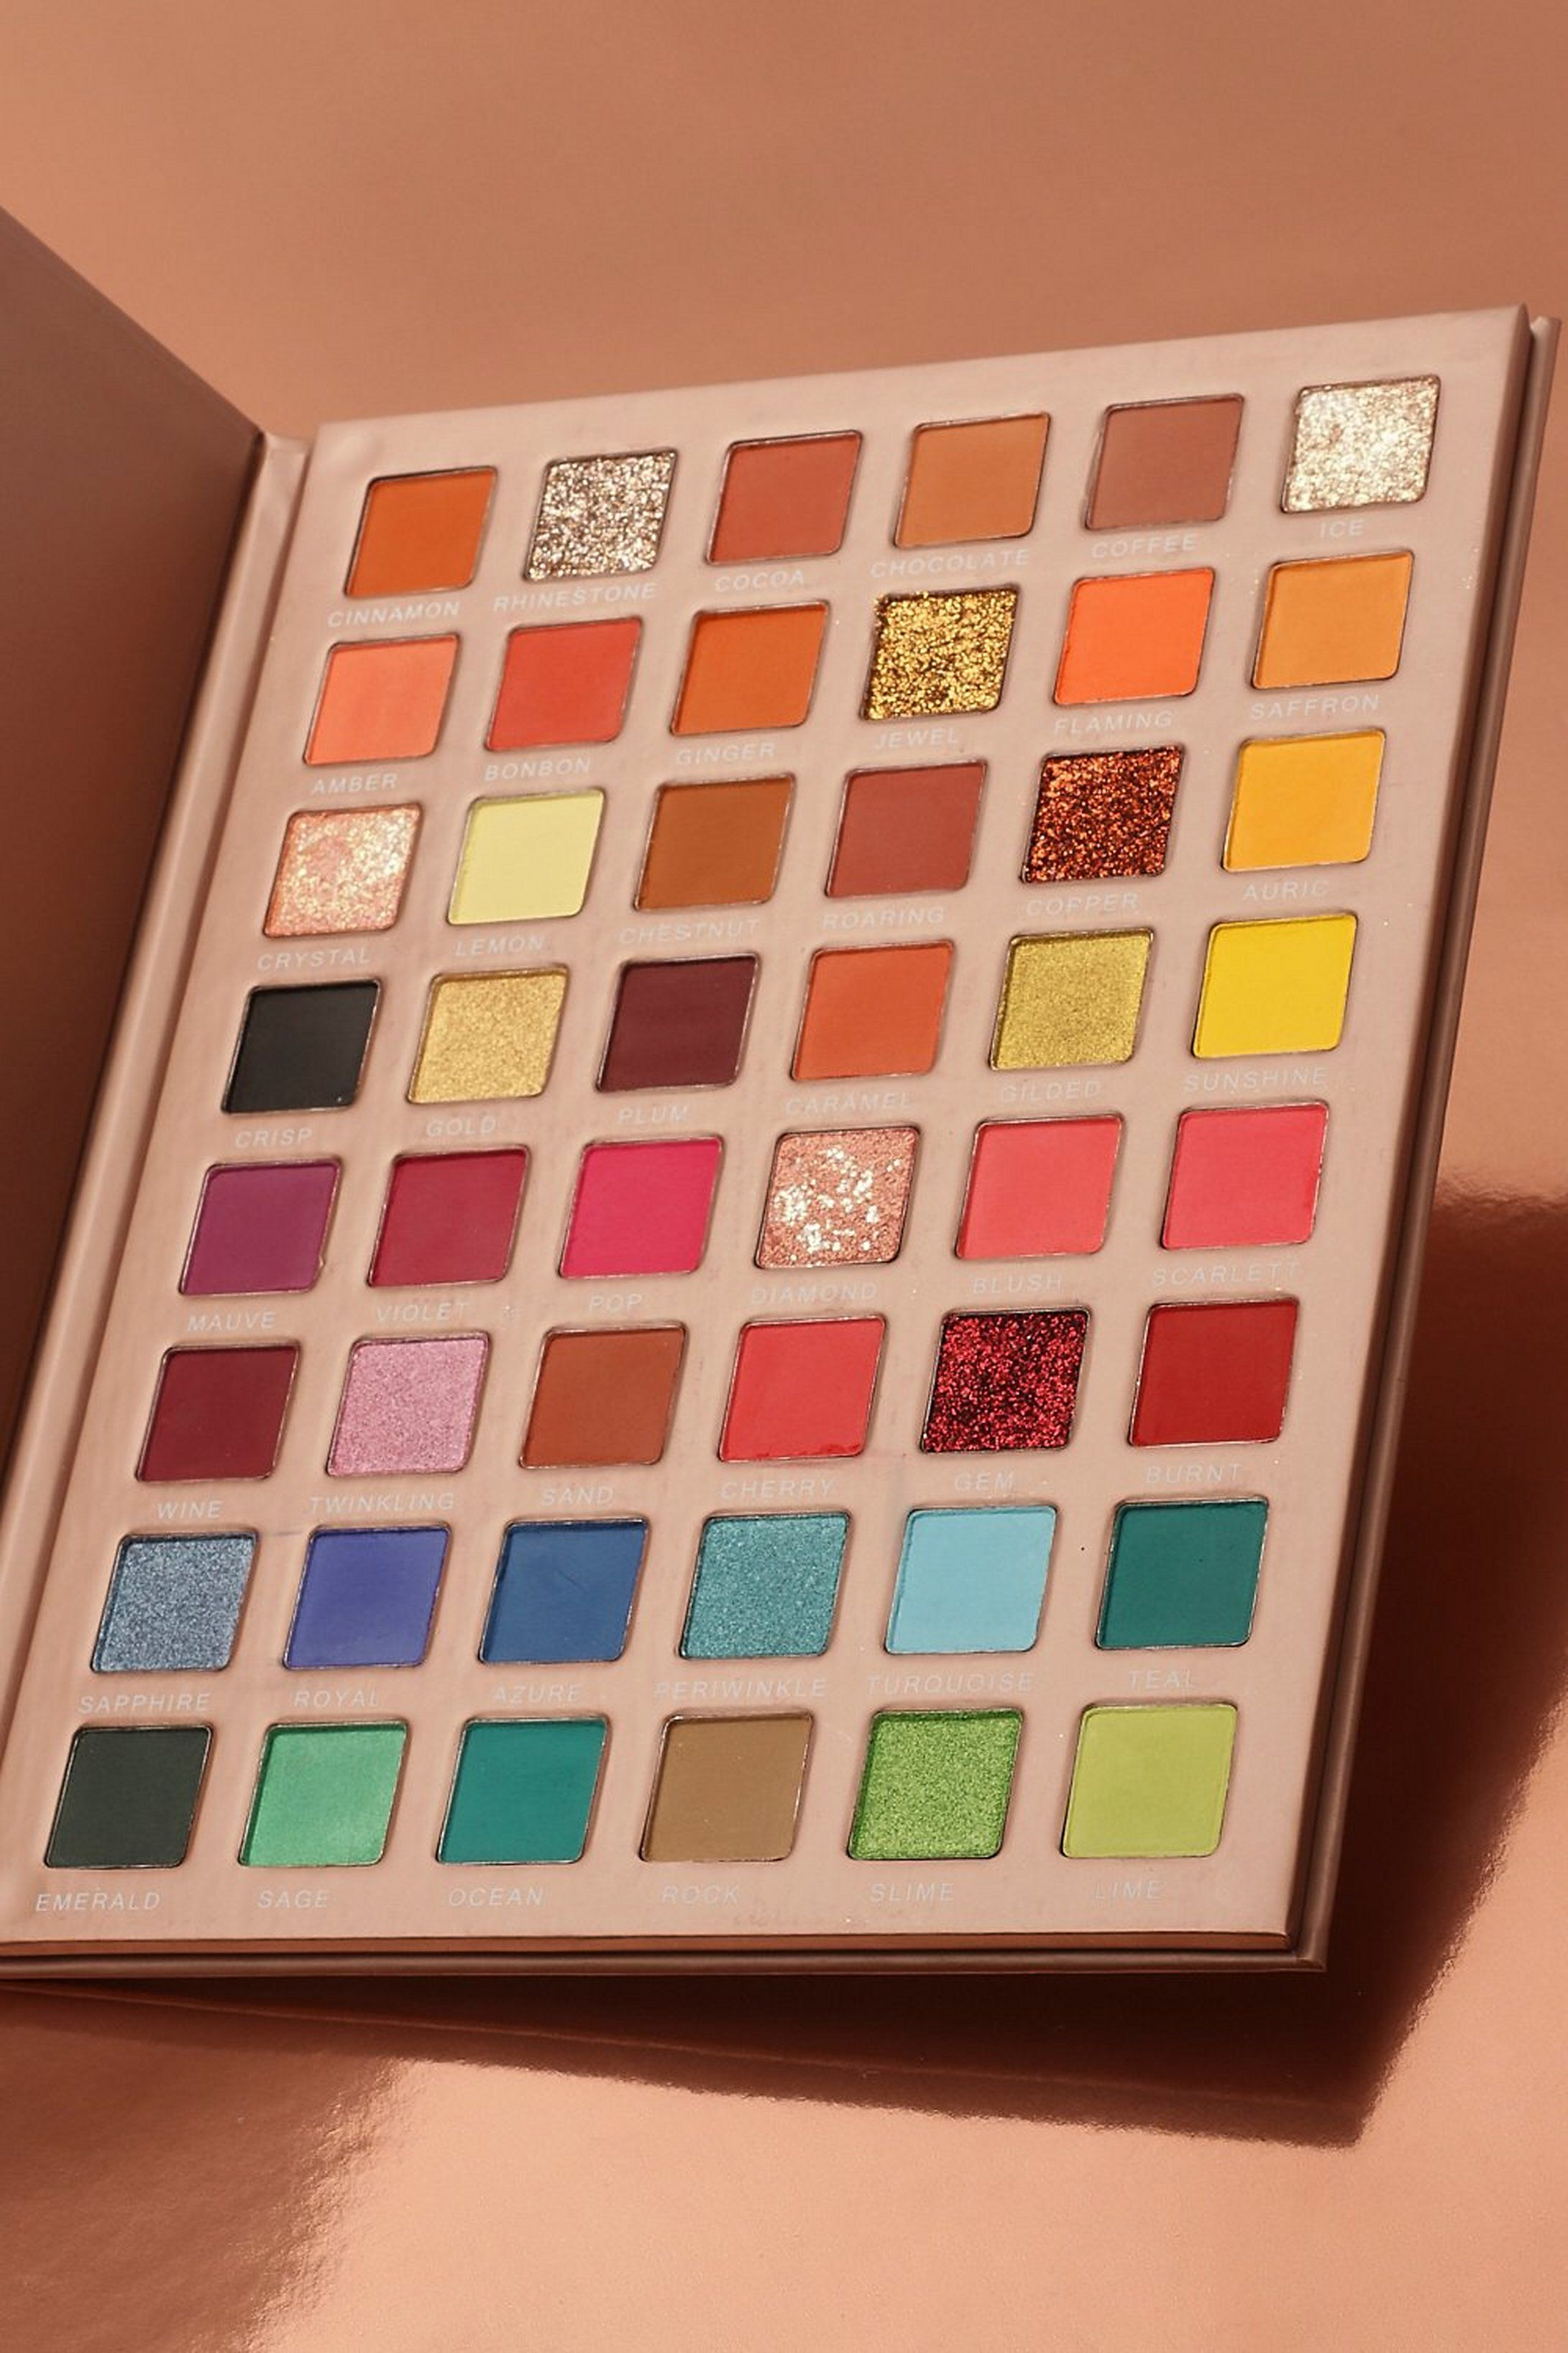 Boohoo Spectrum Eyeshadow Palette Boohoo Eyeshadow Palette Eyeshadow Colourpop Eyeshadow